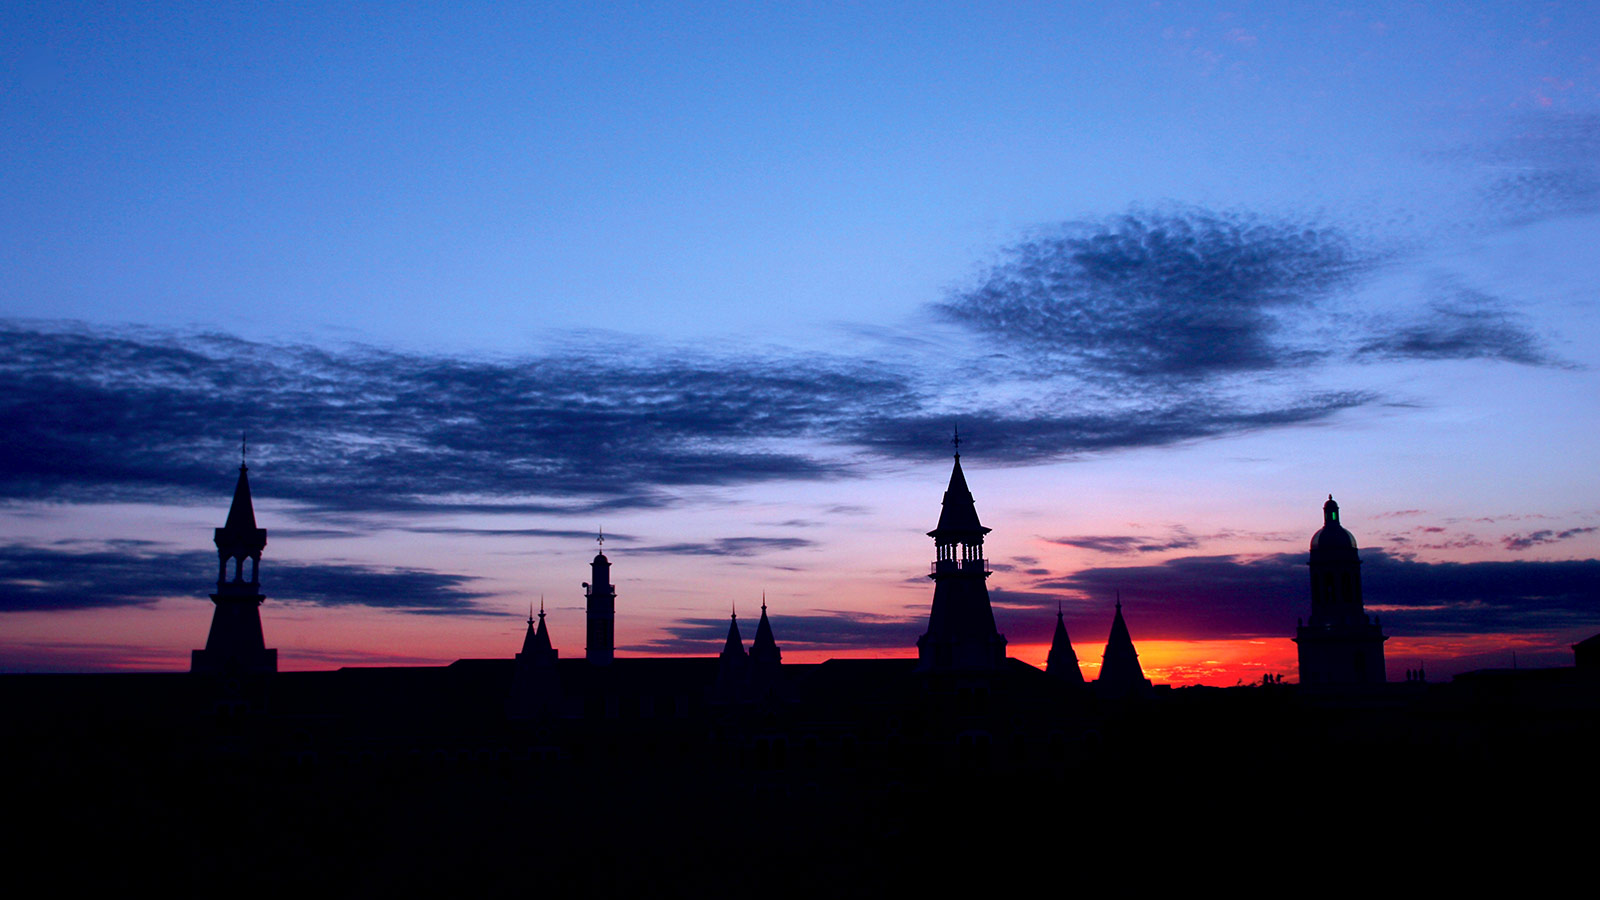 The spires of Burleson and Old Main and the dome of Pat Neff frame a beautiful Central Texas sunset.